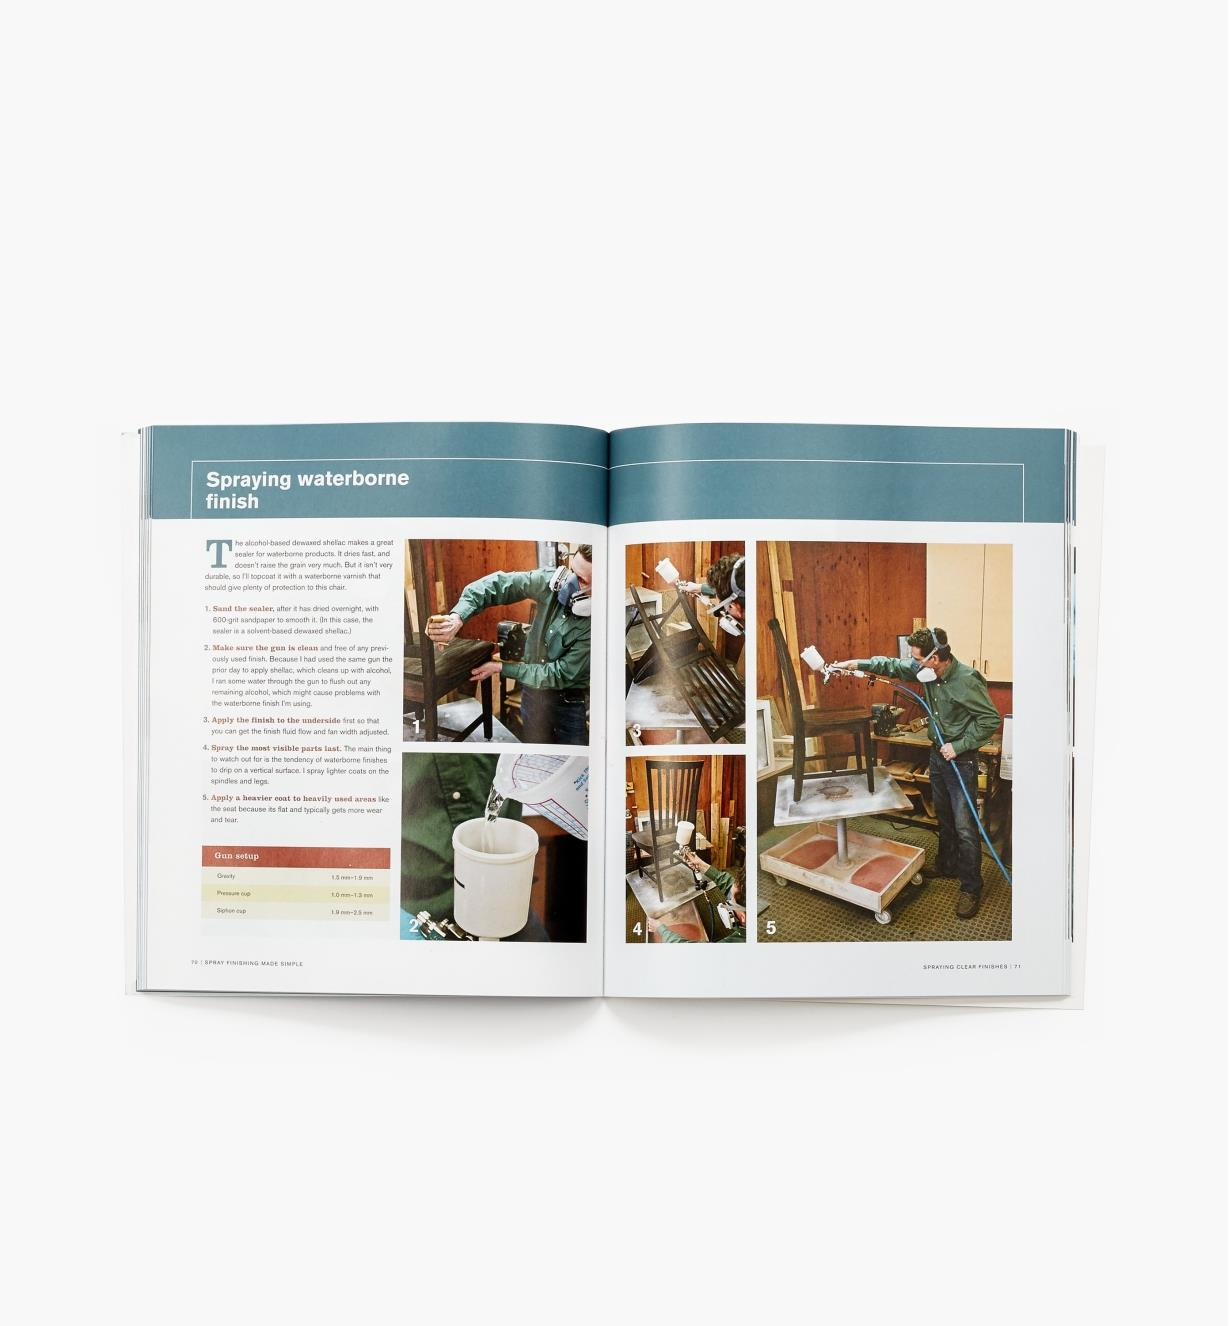 73L0496 - Spray Finishing Made Simple — Book & DVD Set